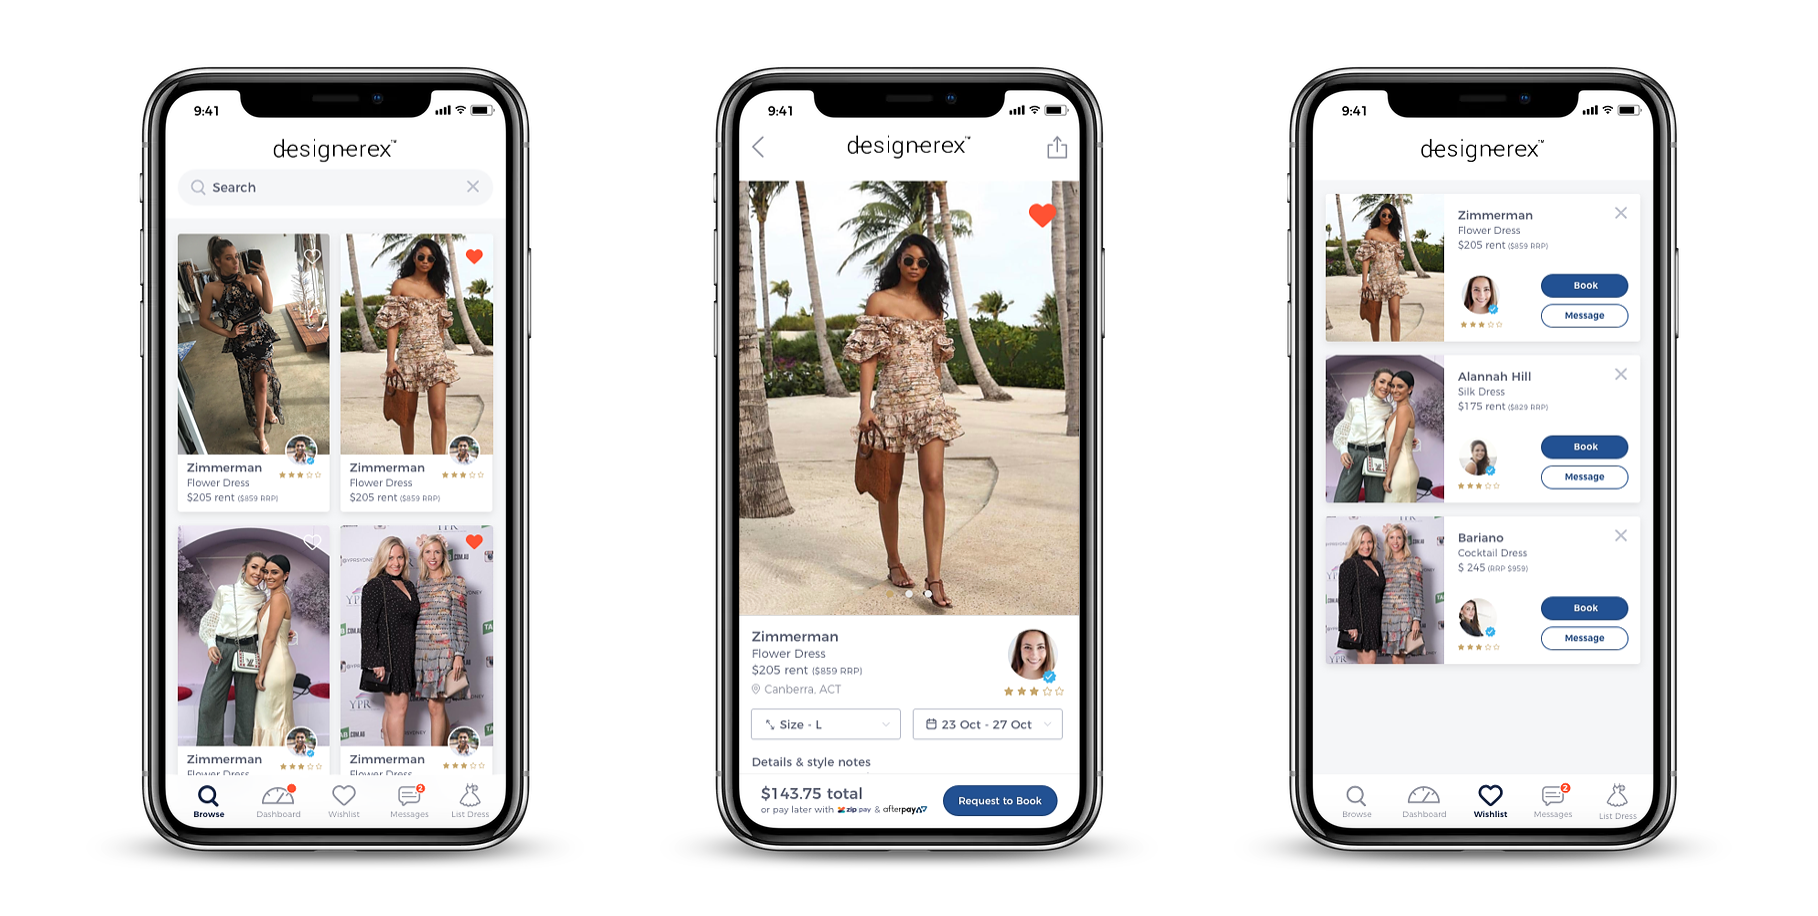 DesignerEx is a dress sharing platform to compare and rent designer dresses. Instead of collecting dust in the closet, users can lend out their designers clothing to others.